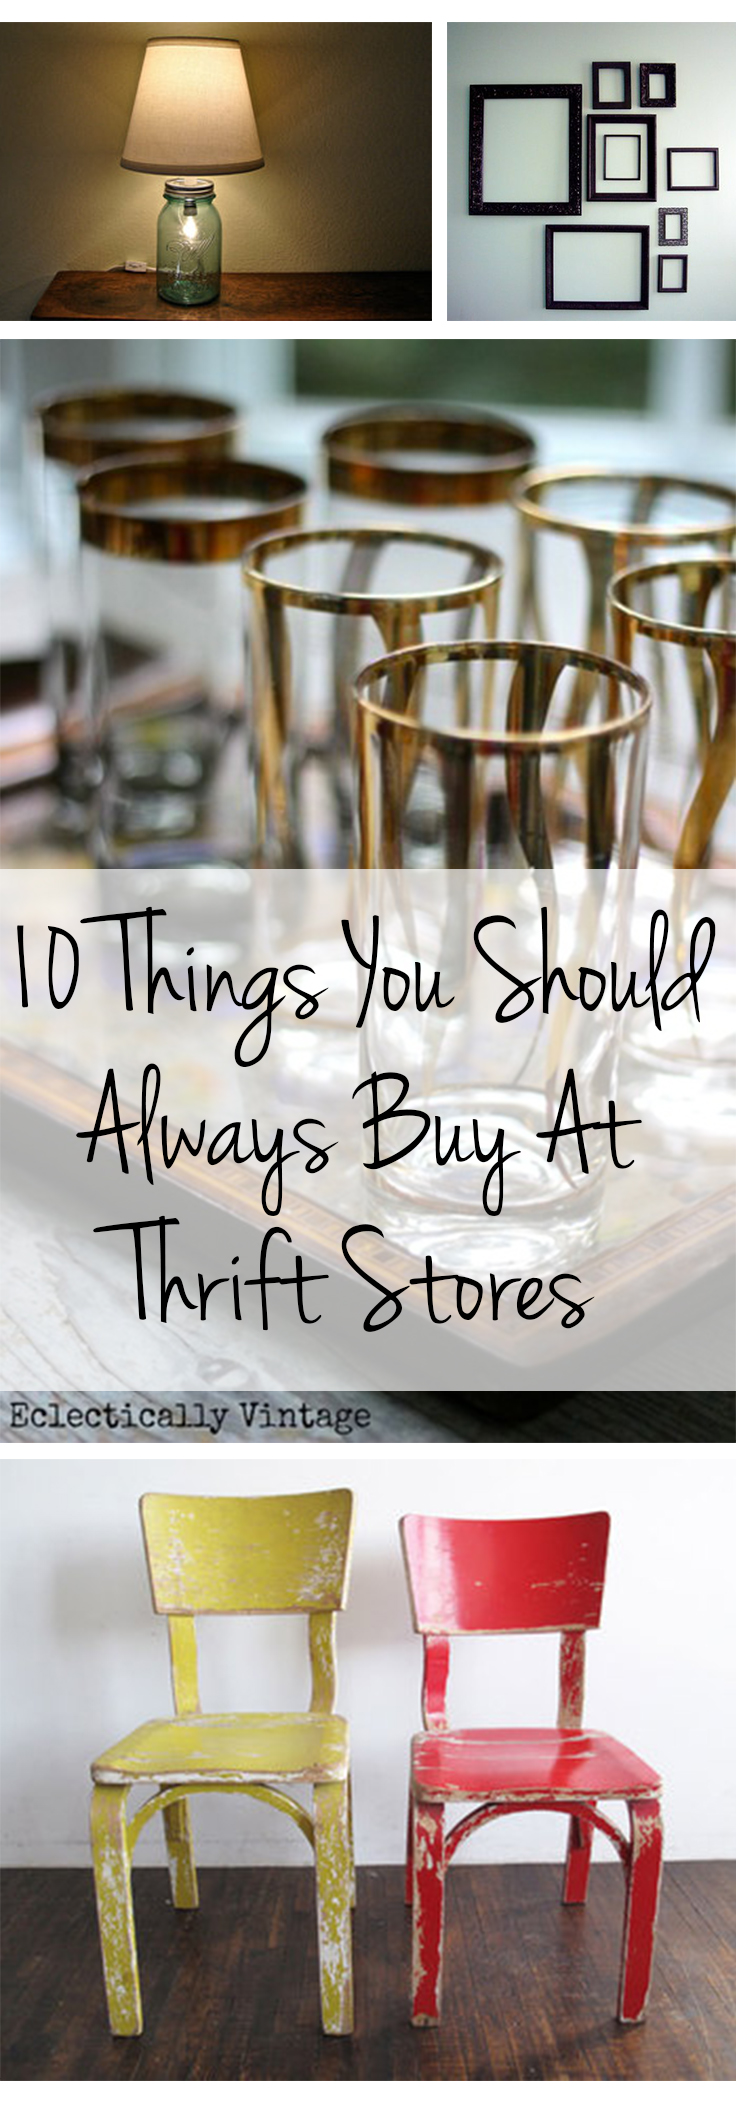 Thrift store shopping, shopping hacks, thrift store hacks, thrift store furniture, popular pin, thrift stores.